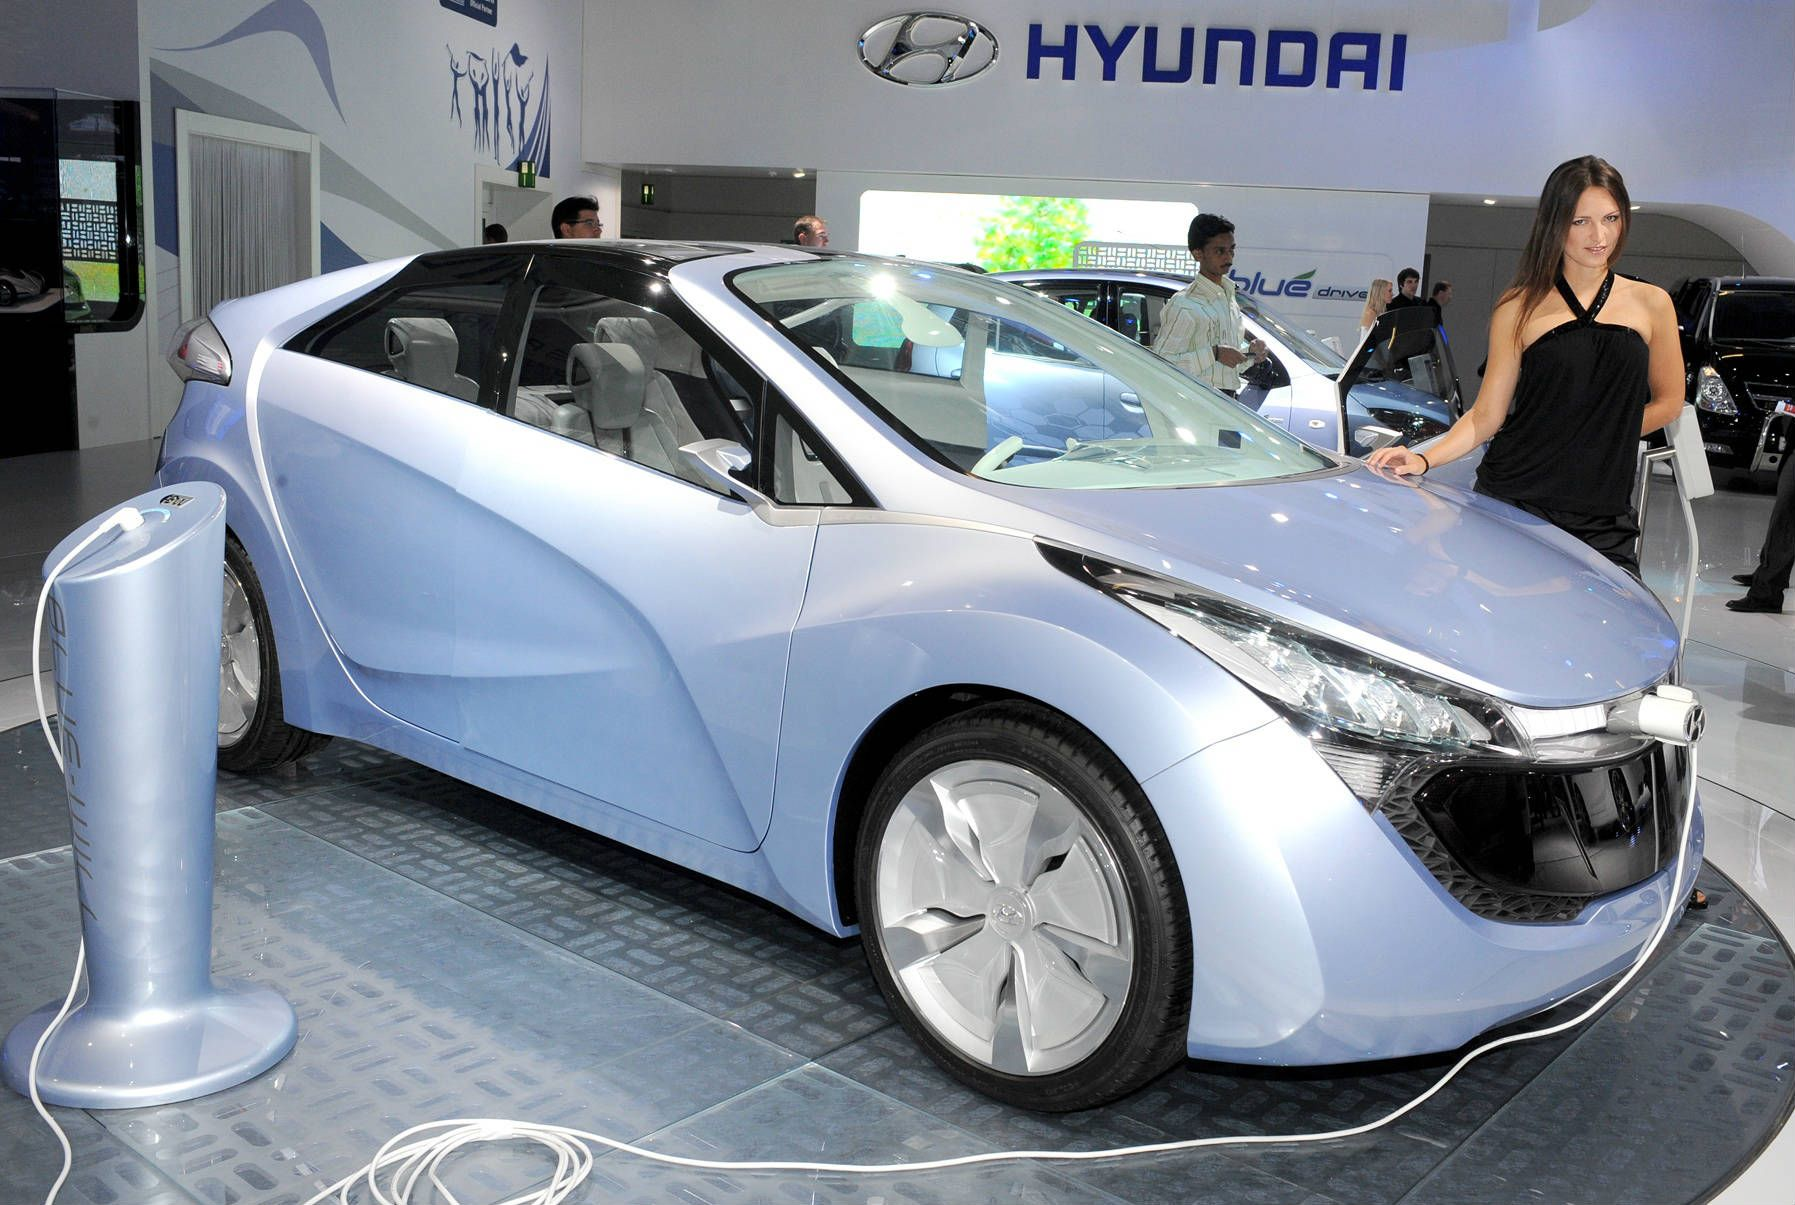 hyundai planning electric car production in india